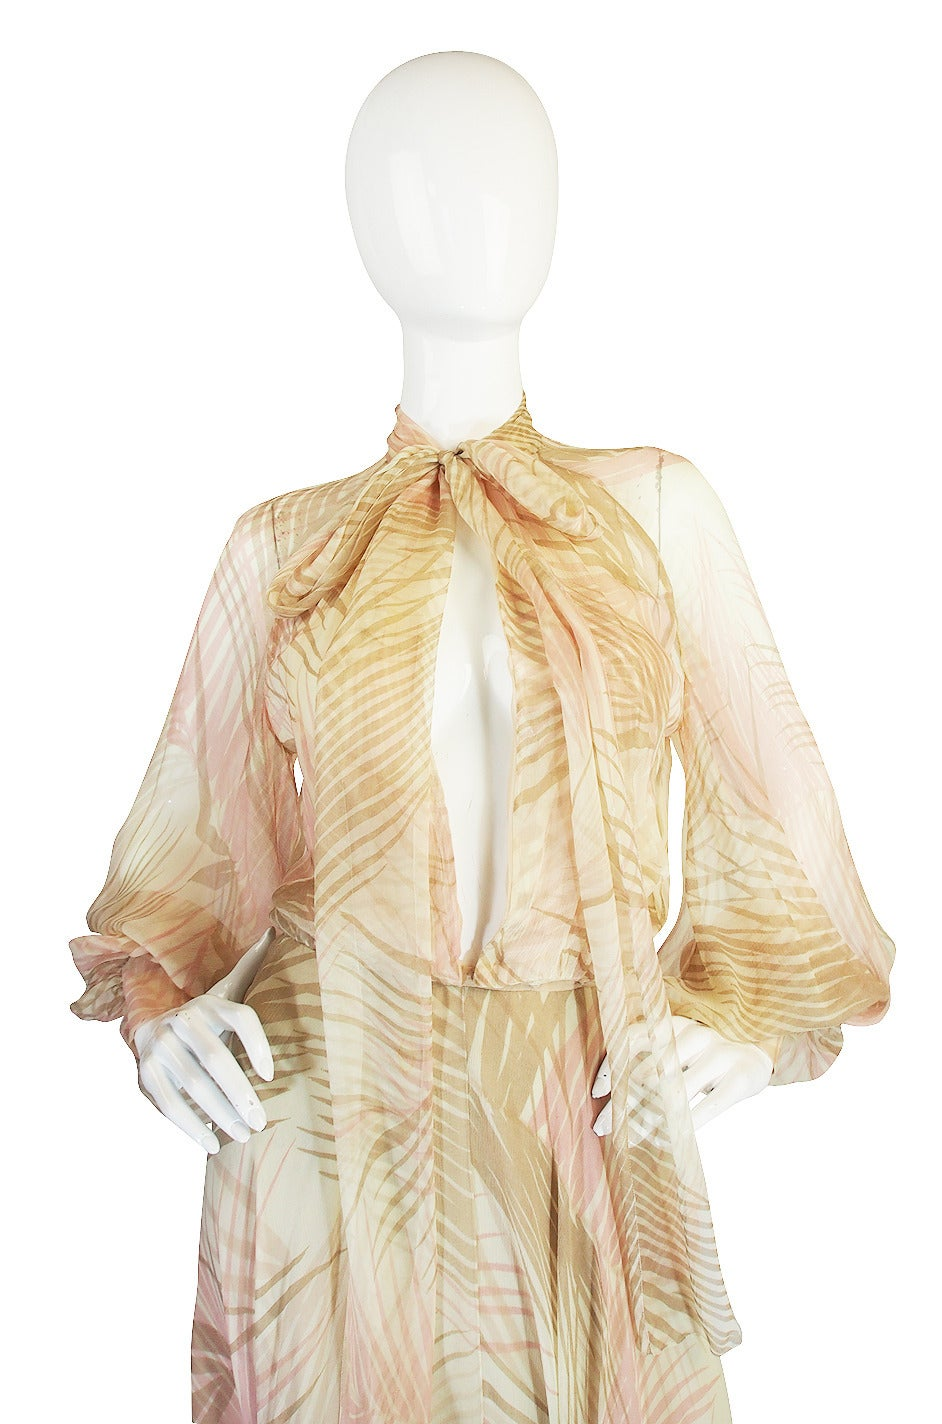 S/S 1974 Christian Dior Haute Couture Silk Gown For Sale 2